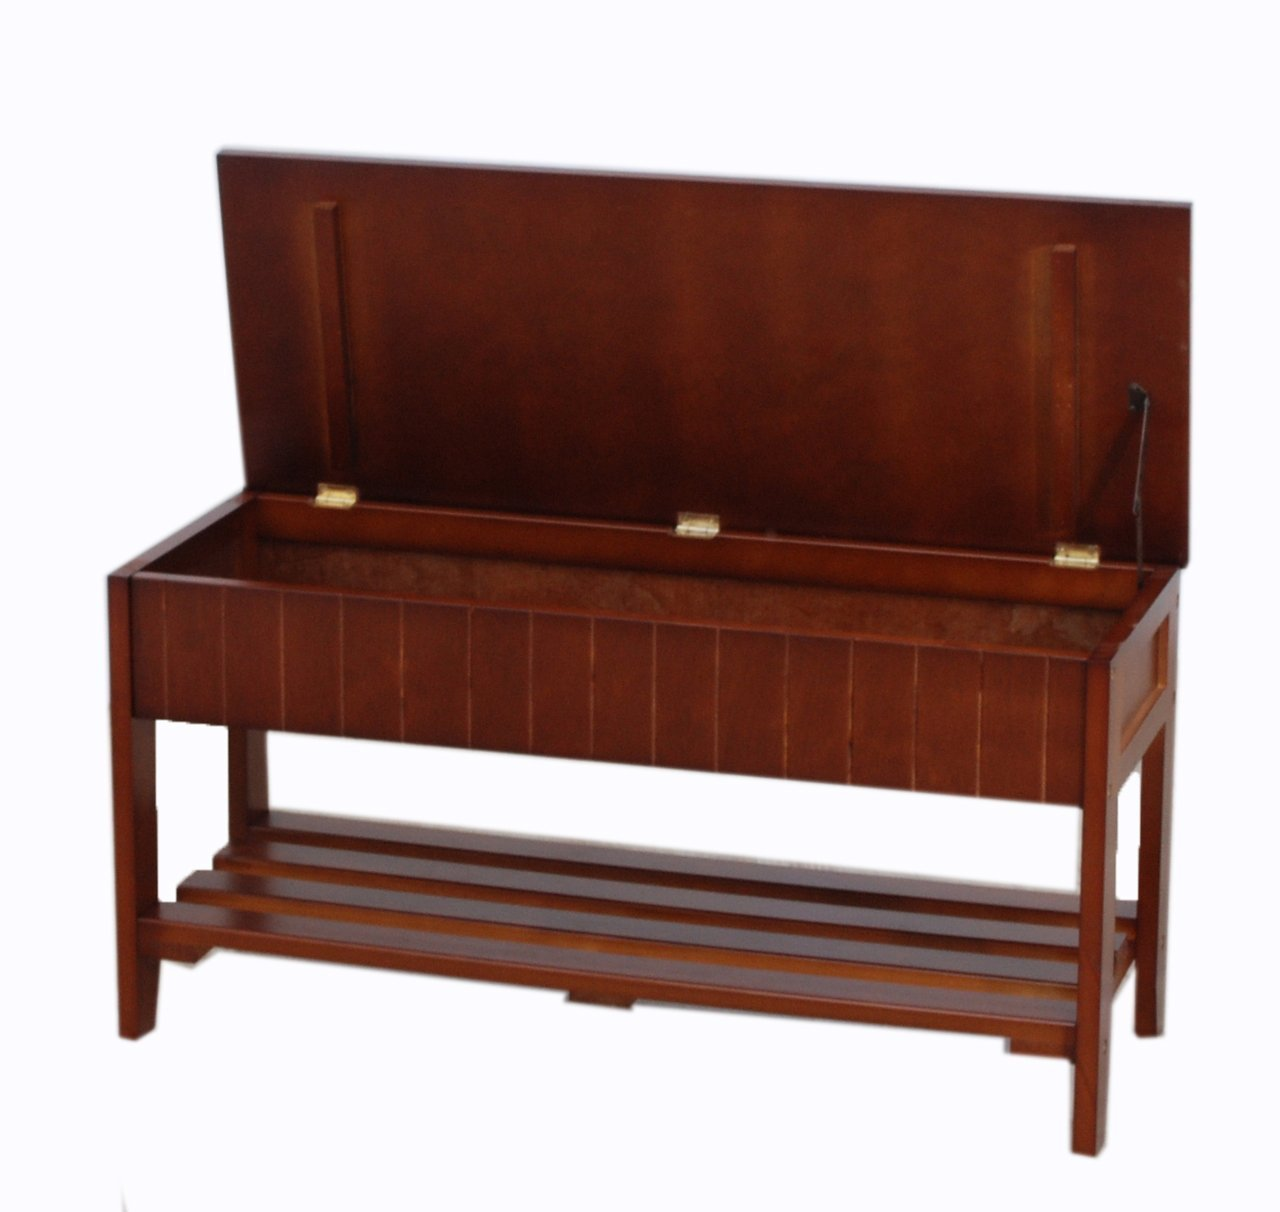 Legacy Decor Solid Wood Shoe Bench Rack with Storage, White and Walnut Color (Walnut) by Legacy Decor (Image #1)